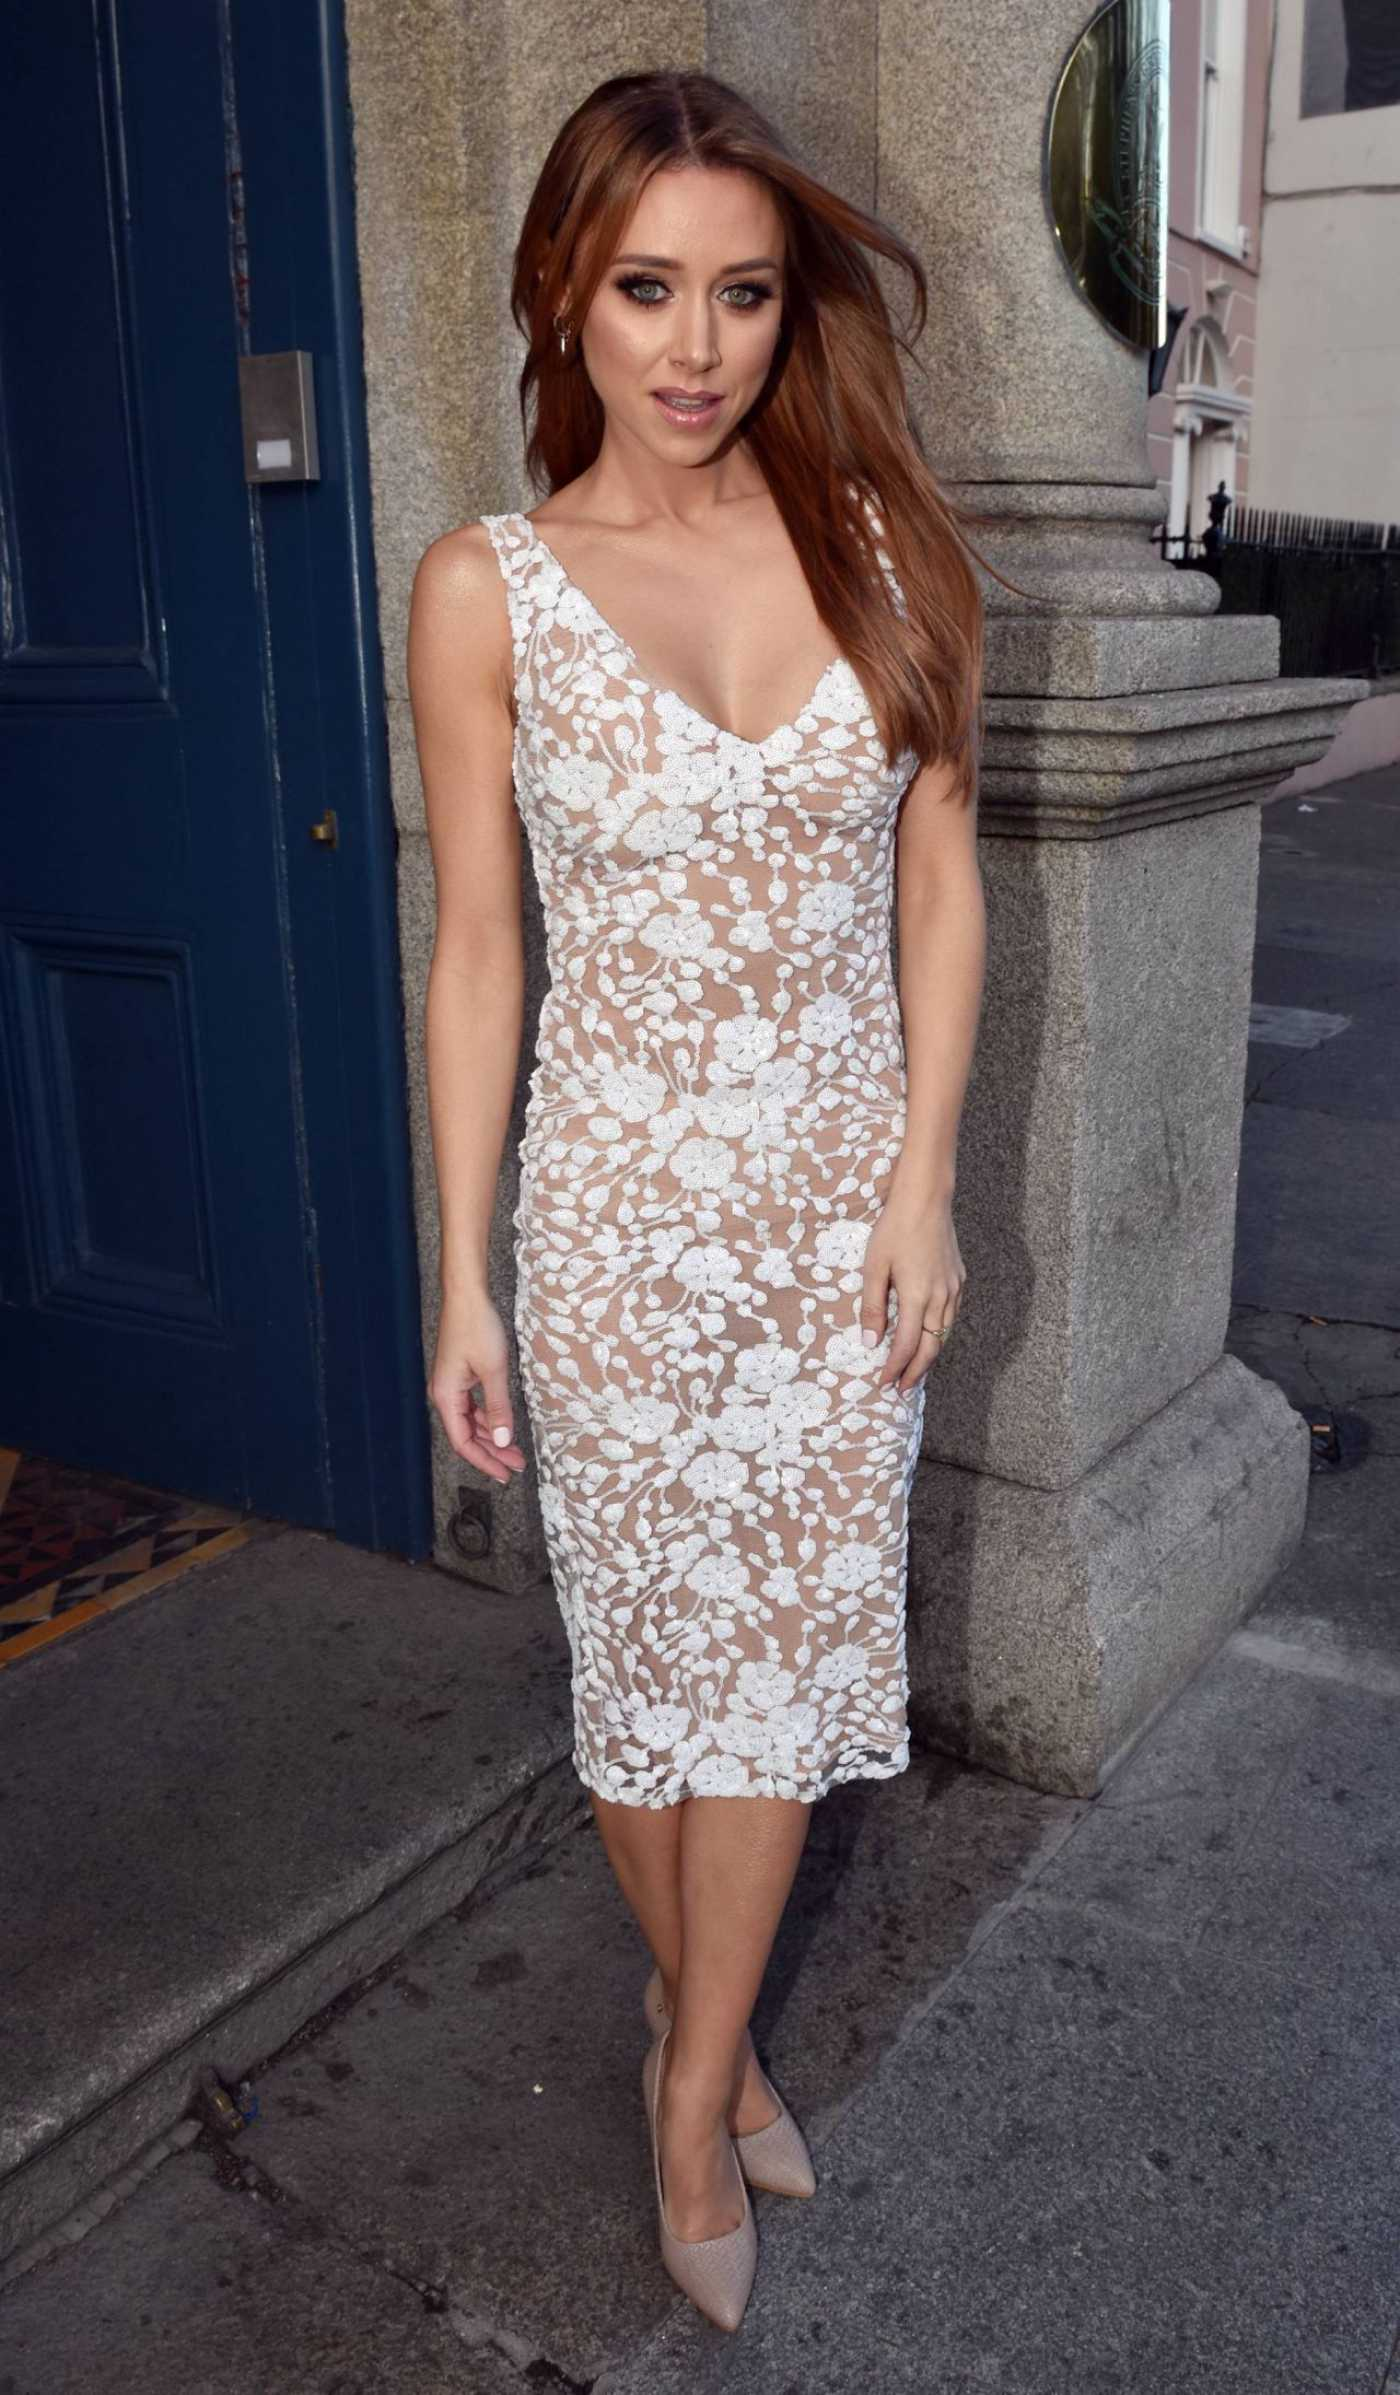 Una Healy in a See-Through Floral Dress Leaves the Hibernian Club in Dublin 04/02/2019